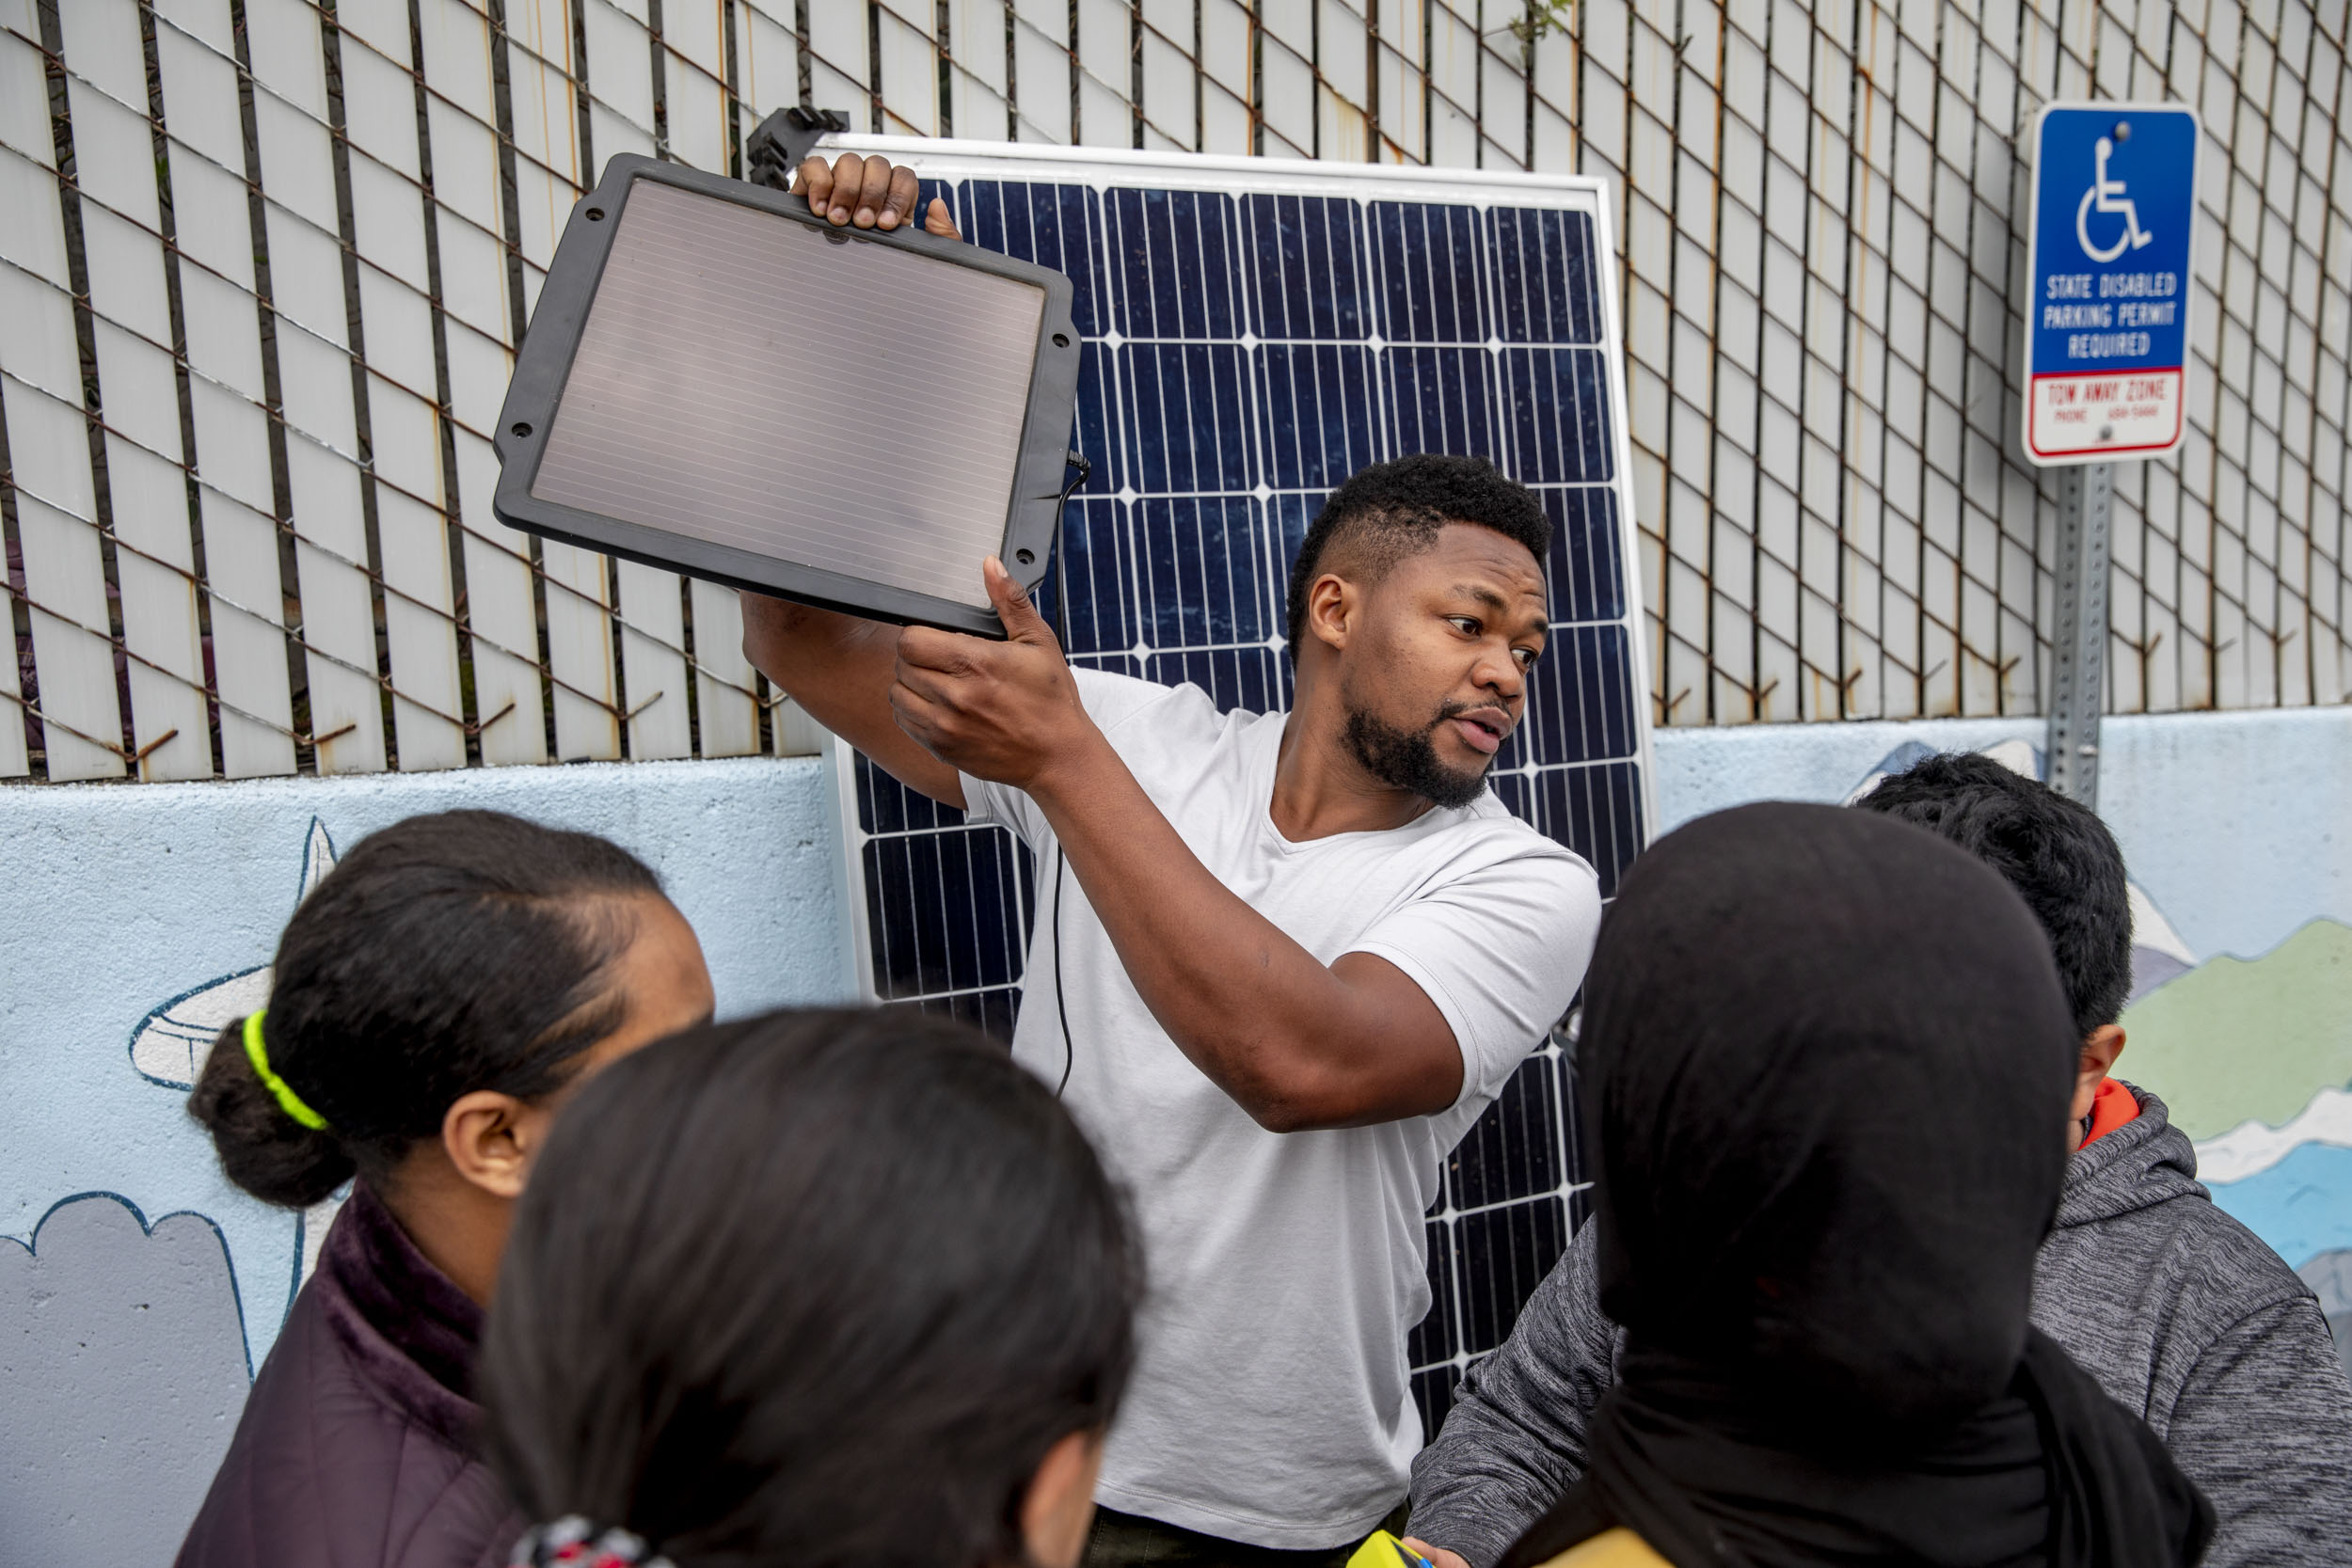 "Edwin Wanji, center, teaches a group of kids from the Lake City Young Leaders program about how to work a solar panel at the Lake City Community Center on April 1. Wanji is the owner and founder of Sphere Solar Energy in Seattle and is often invited to talk to students about opportunities in solar. ""I'm trying to create excitement around this field. It's renewable energy, it's exciting, there will always be more sunlight tomorrow,"" he says. ""It's encouraging to see the kids' excitement about it."" (Photo by Dorothy Edwards/Crosscut)"